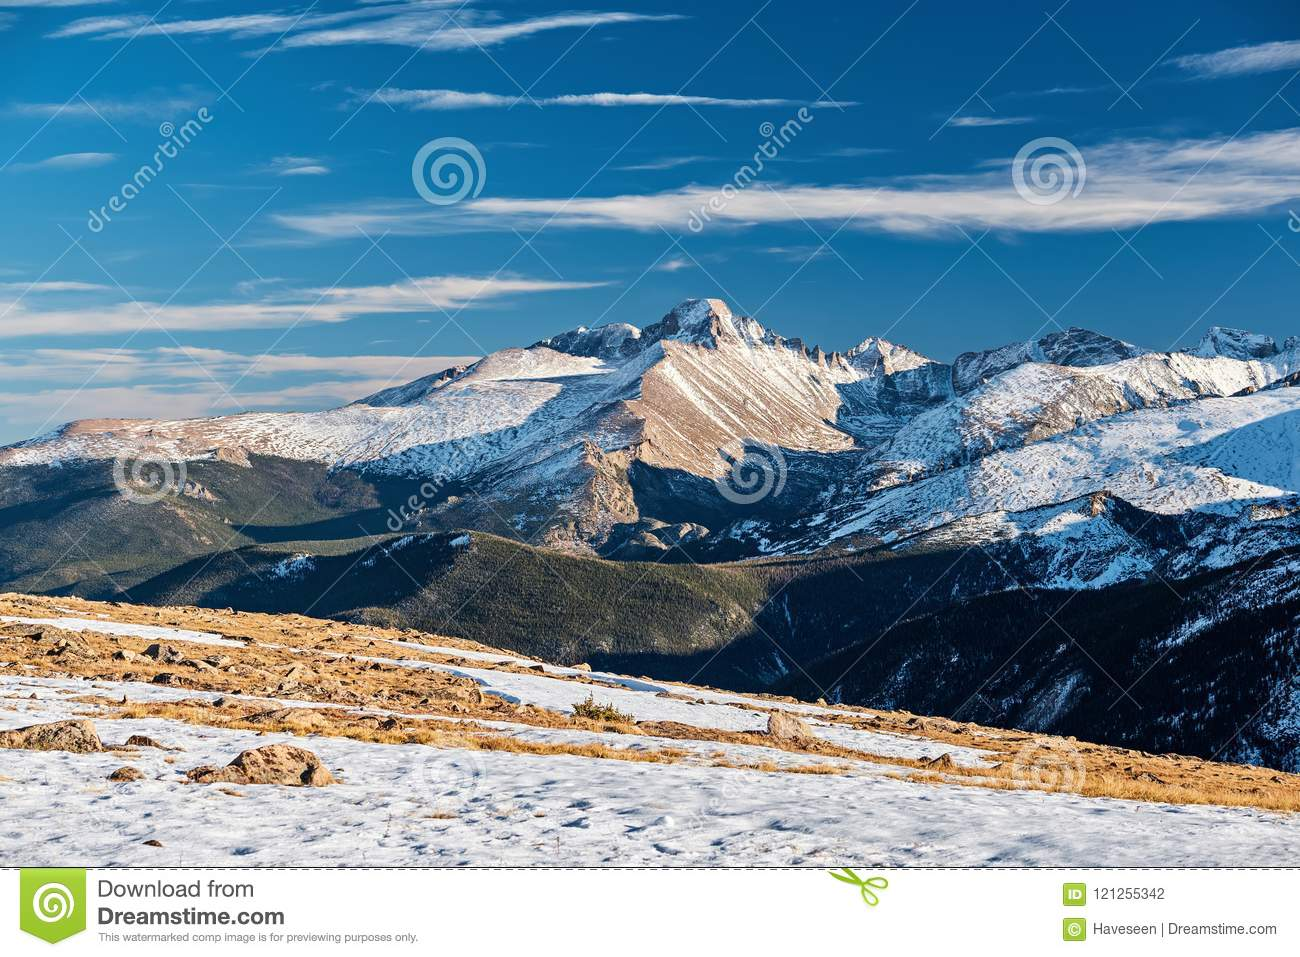 High alpine tundra landscape with mountains